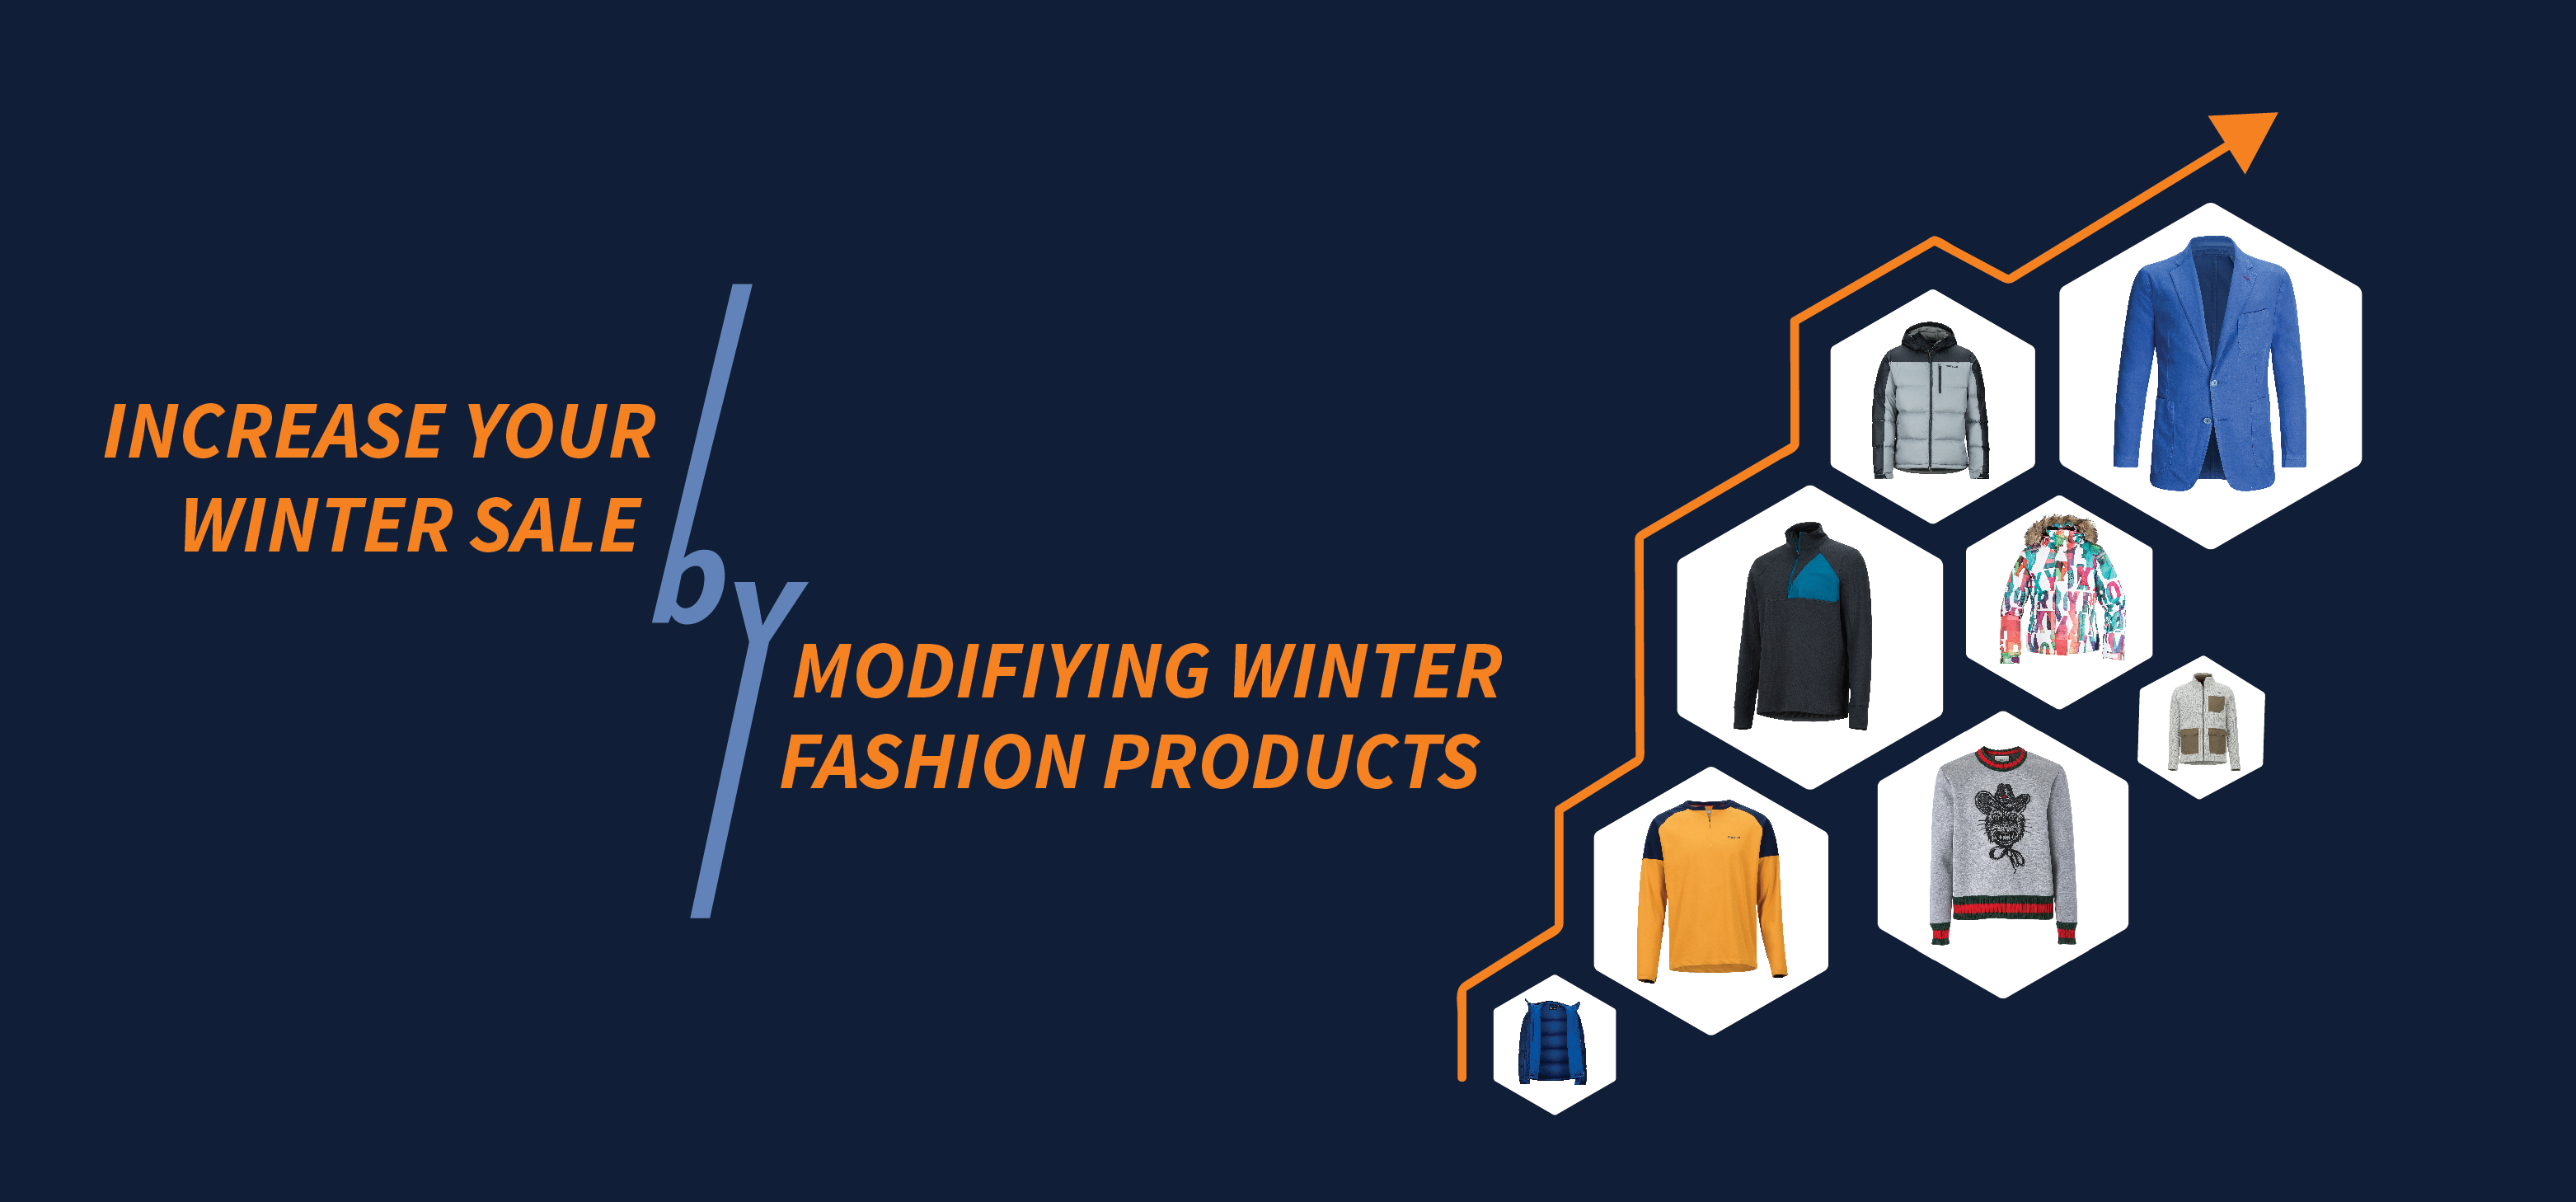 Vector Based Image File Formats Extensions And Their Definitions Circuit Ai Pdf Free Graphics Download Increase Your Winter Sale By Modifying Fashion Products Images